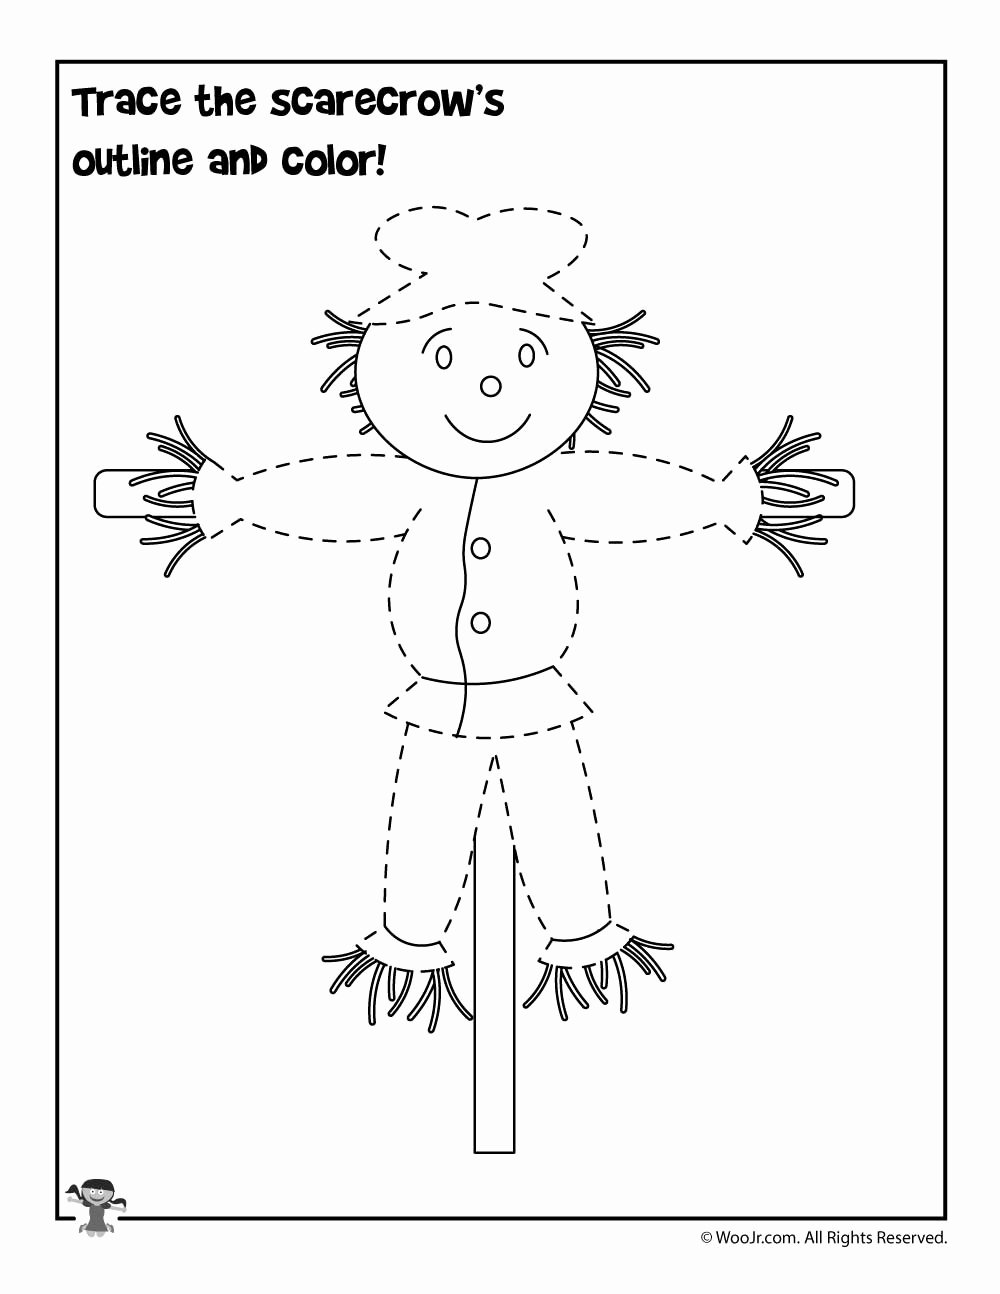 Scarecrow Worksheets for Preschoolers Kids Trace the Scarecrow Worksheet